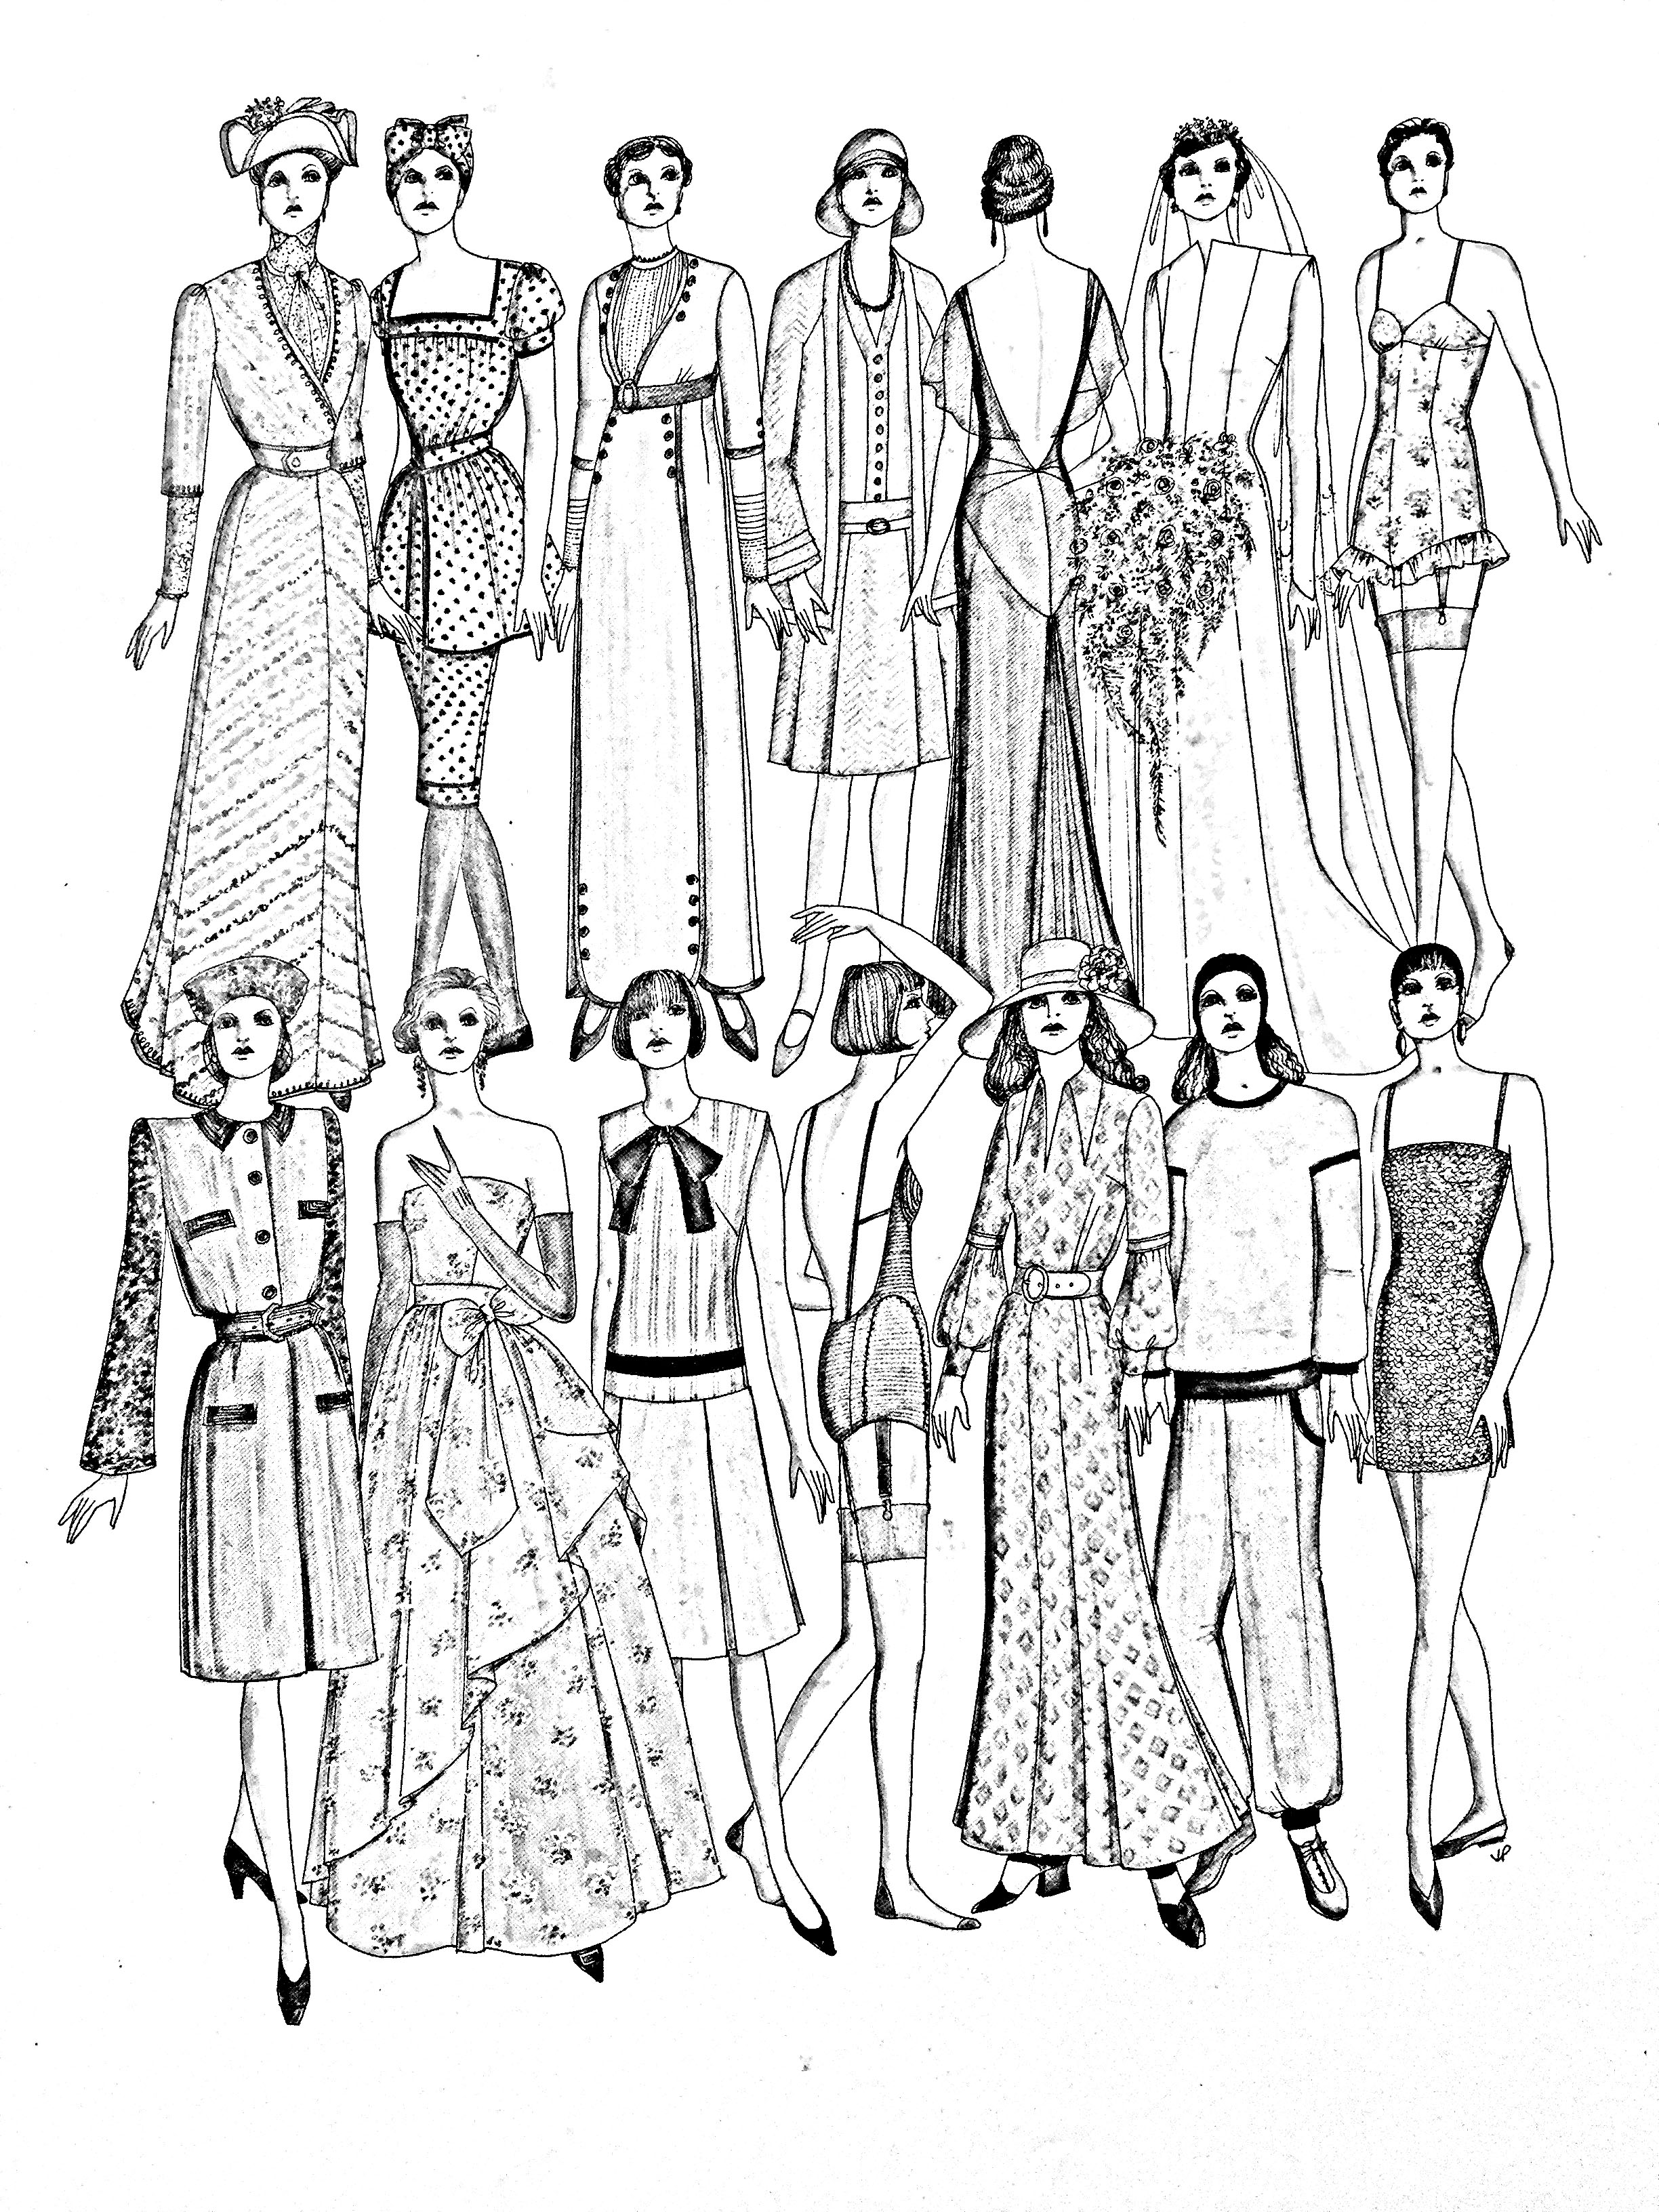 Coloring page inspired by a page of the book « Fashion in the XXth century », by John Peacock